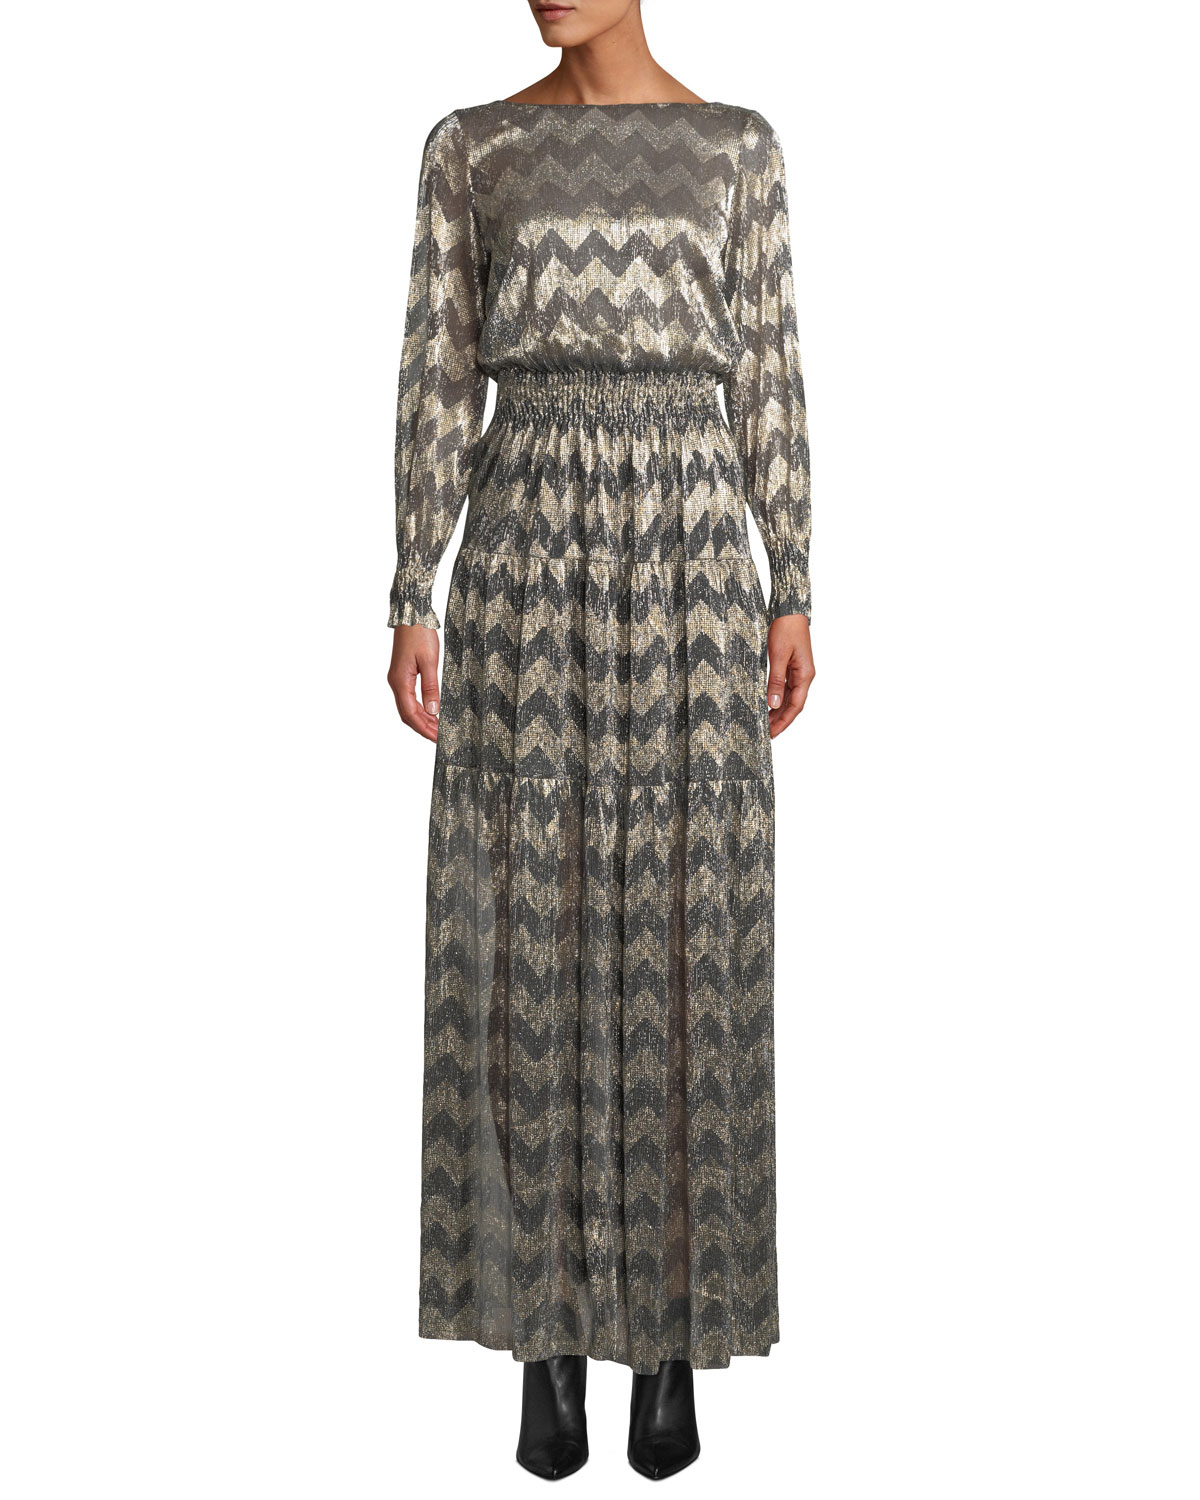 BA&SH Boat-Neck Chevron Stripe Metallic Maxi Dress in Gray